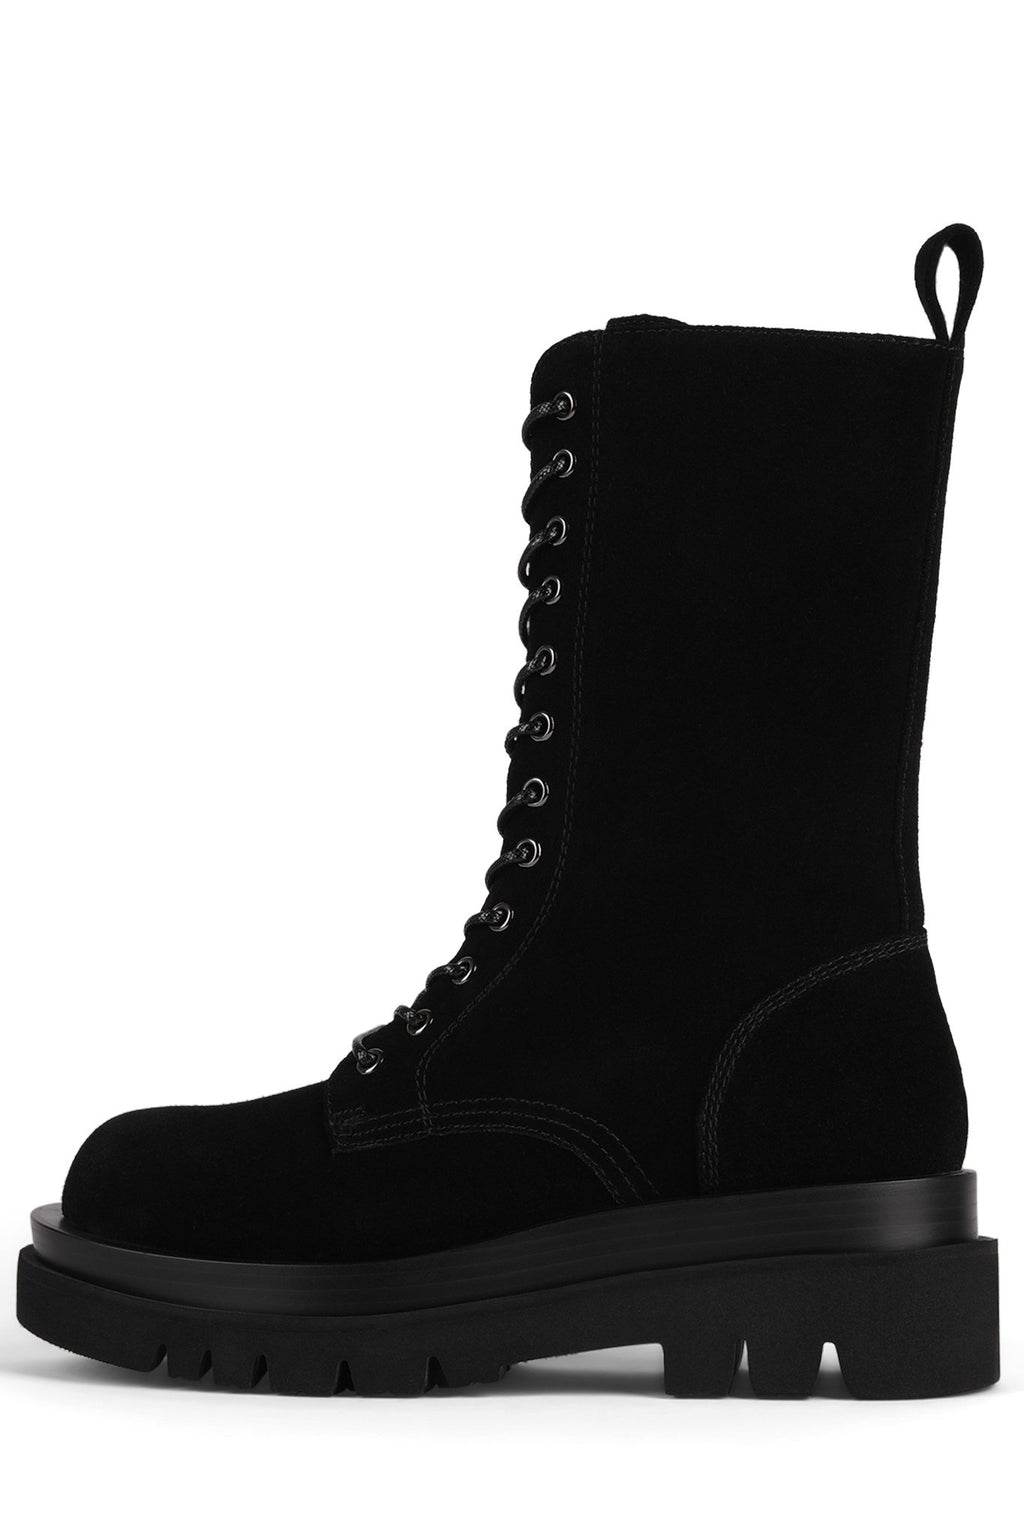 DIABOL-MID Mid-Calf Boot DV Black 6